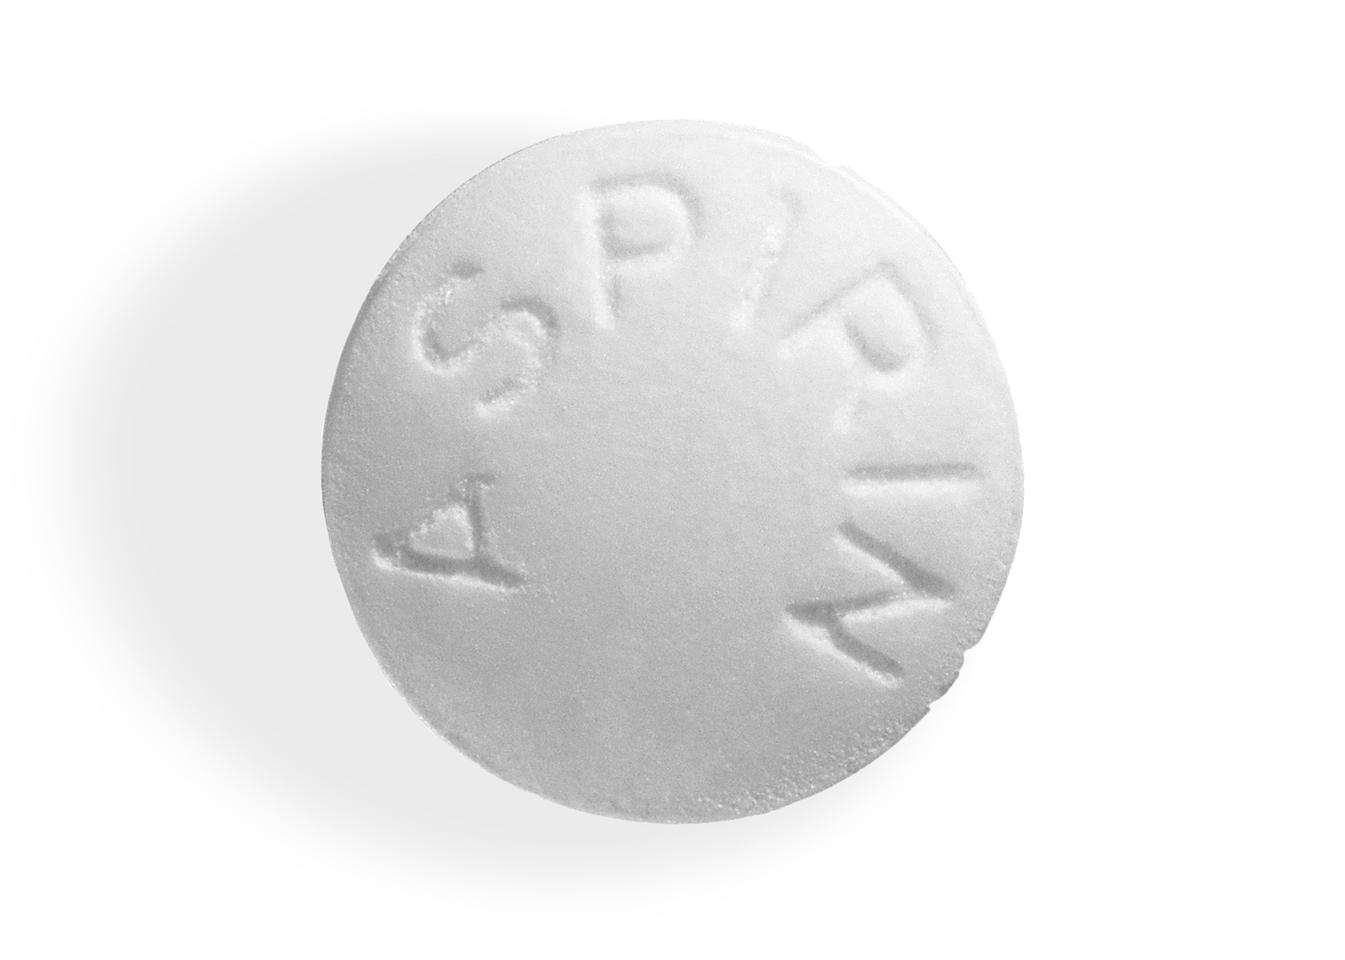 Scientists are still debating whether there are benefits to taking aspirin as a preventative measure against cancer if you are otherwise healthy